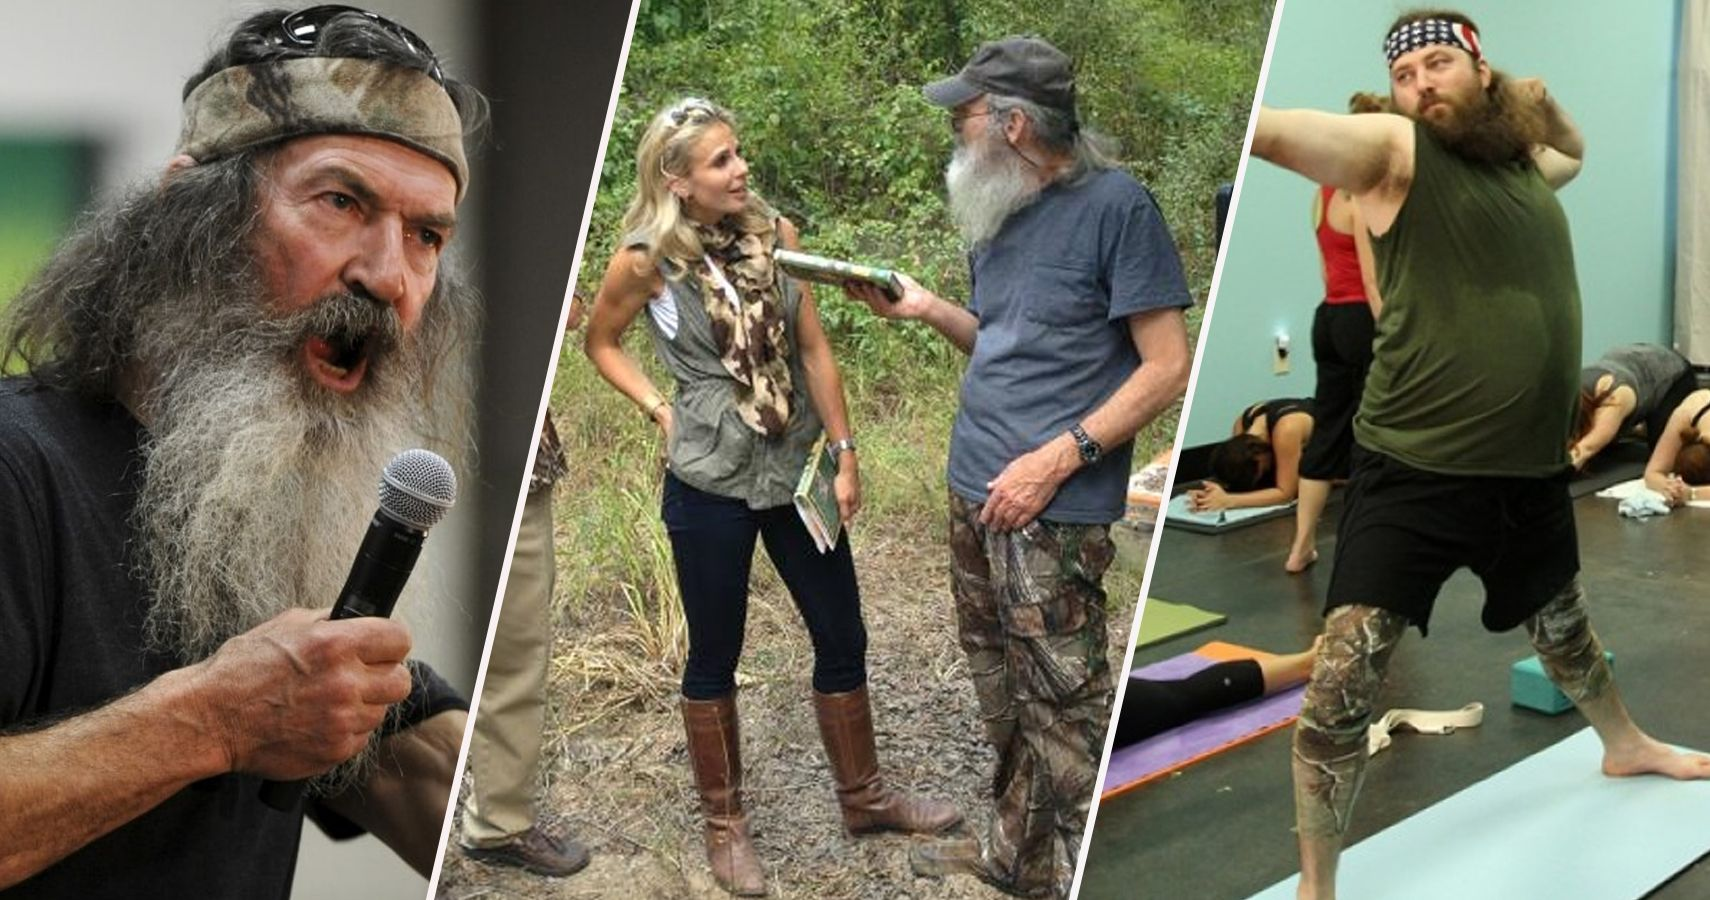 20 Crazy Rules The Cast Of Duck Dynasty Has To Follow